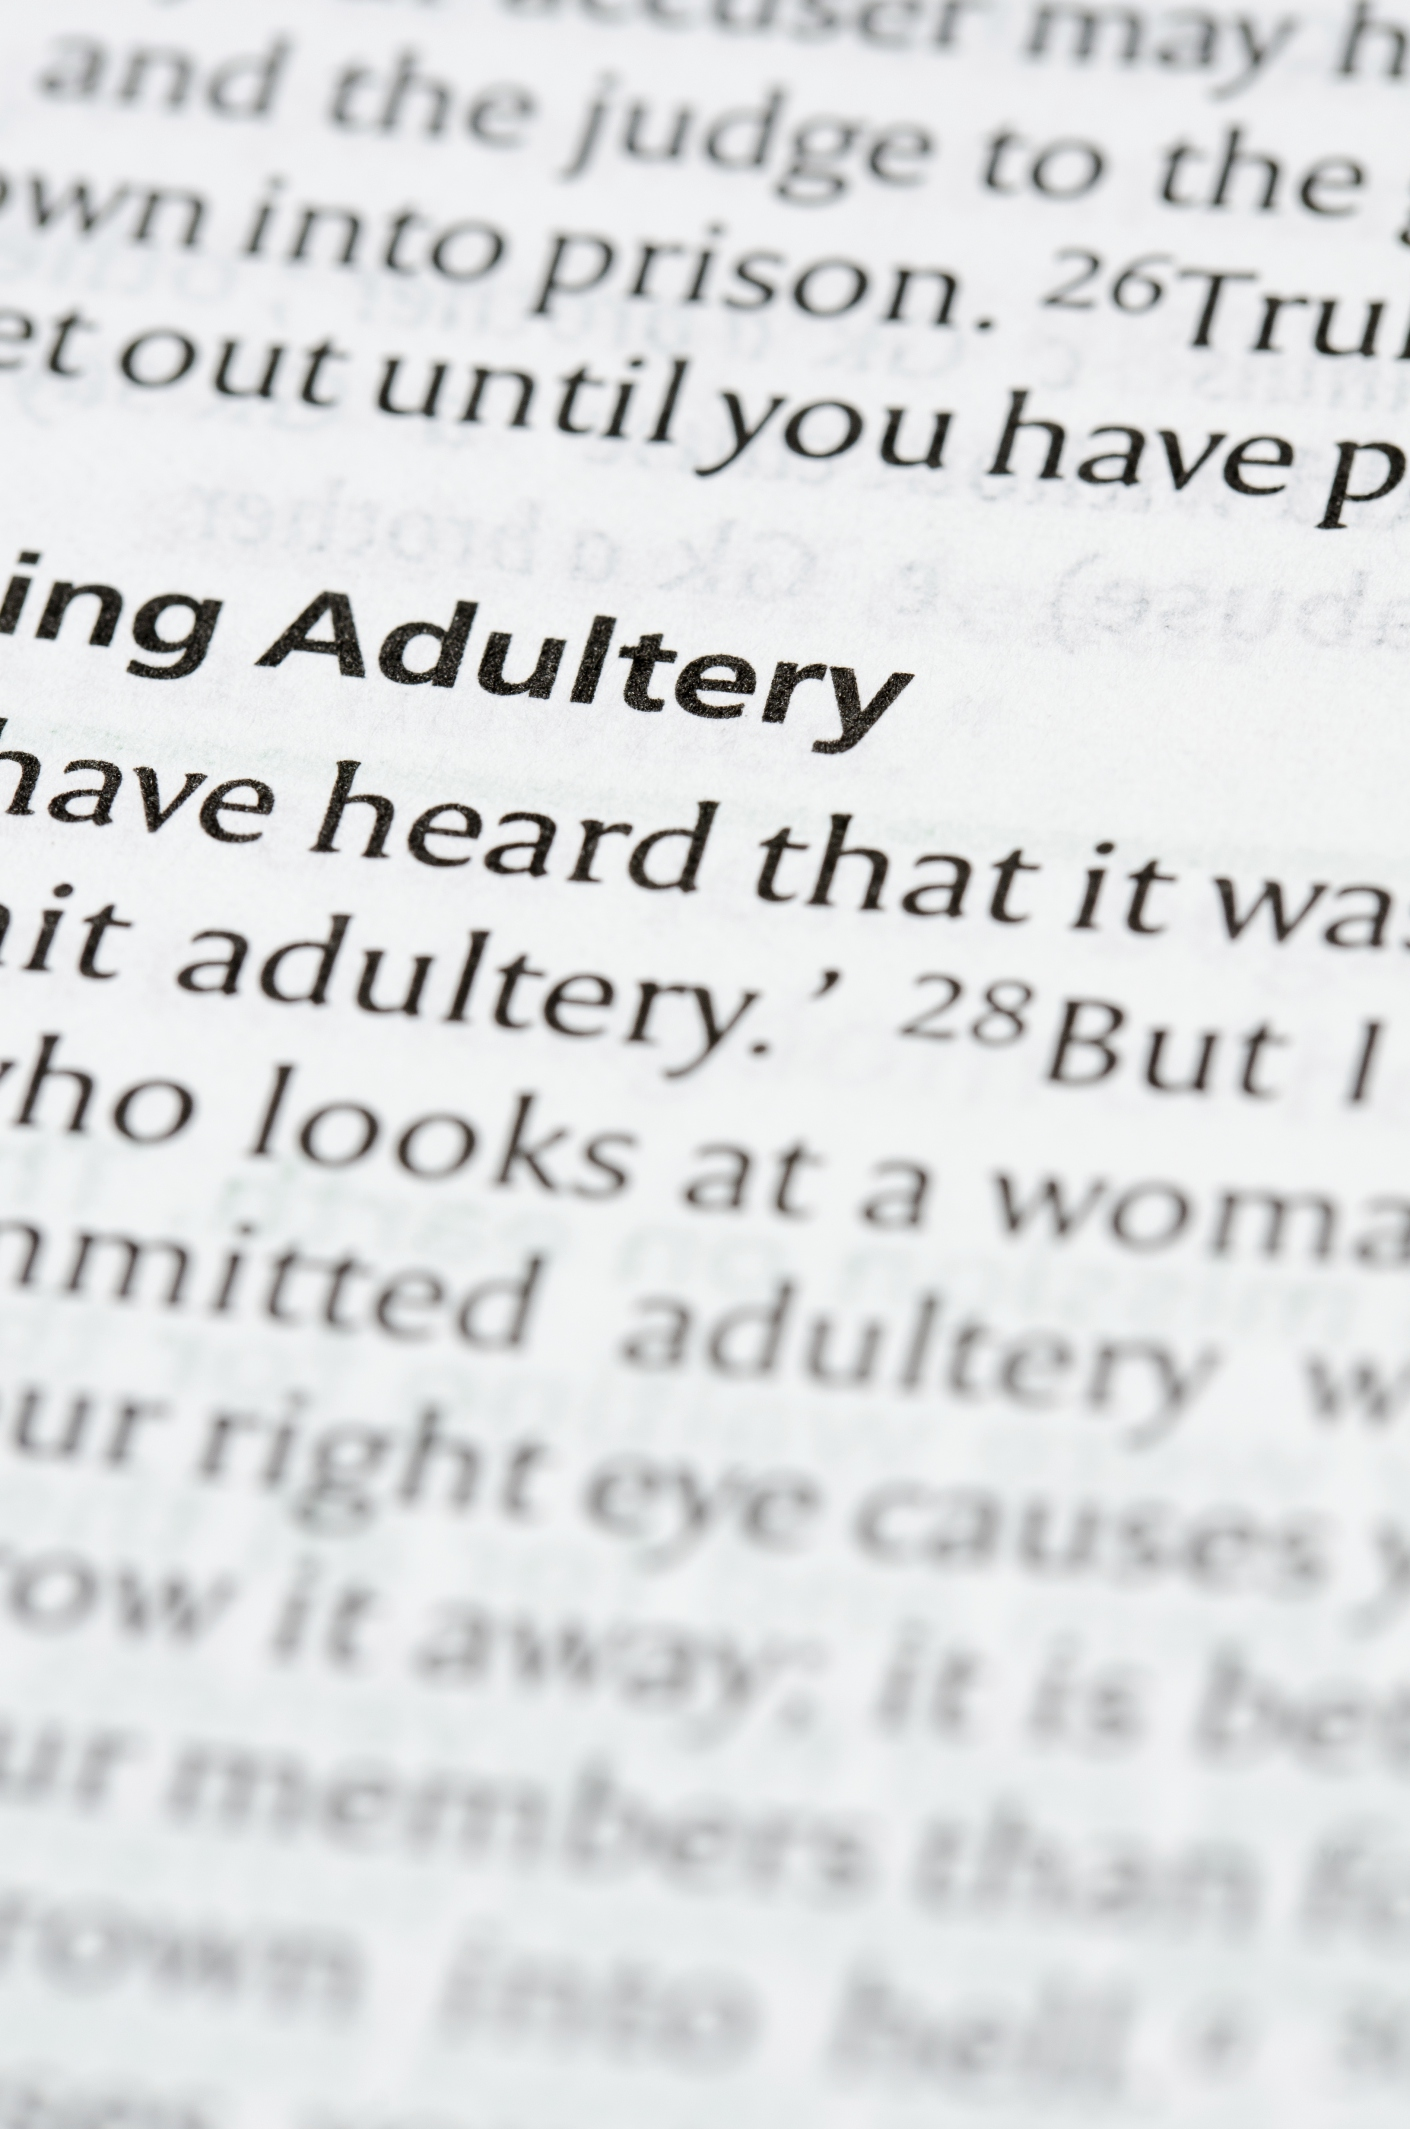 What Are the Consequences of Adultery?